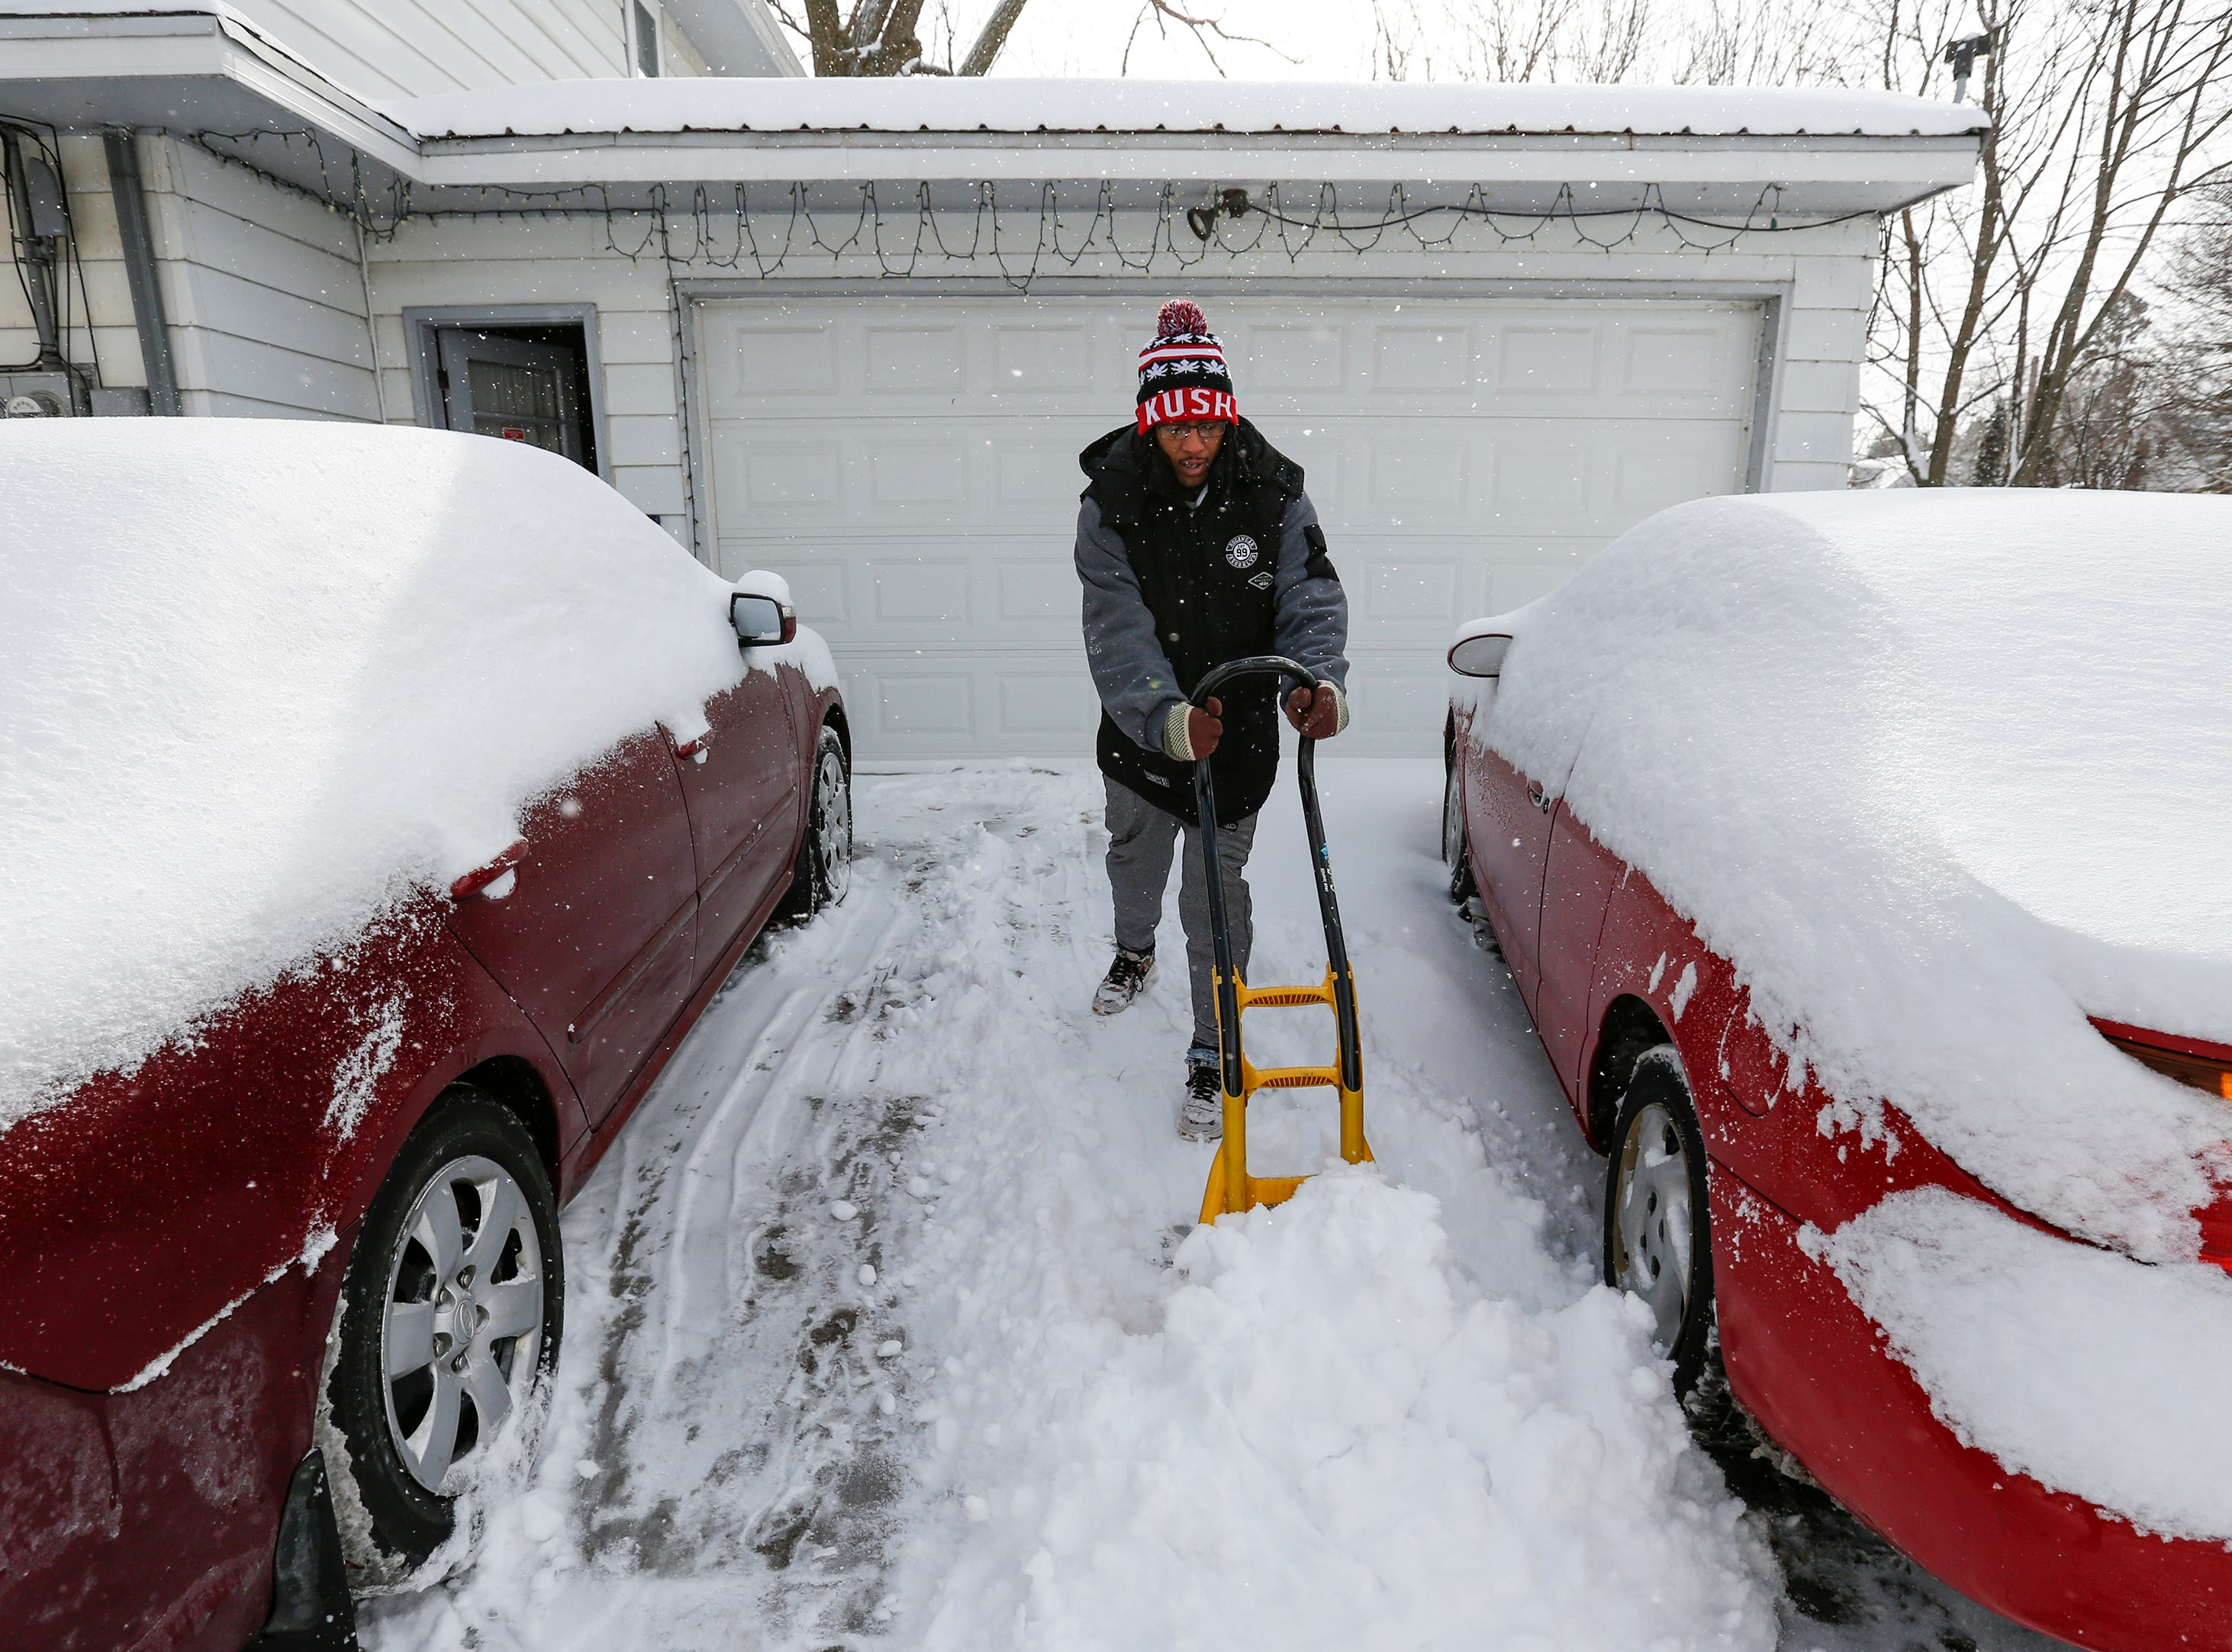 Brandon McCloud, of Manitowoc, shovels his driveway after a snowstorm Wednesday, January 23, 2019, in Manitowoc, Wis. Joshua Clark/USA TODAY NETWORK-Wisconsin